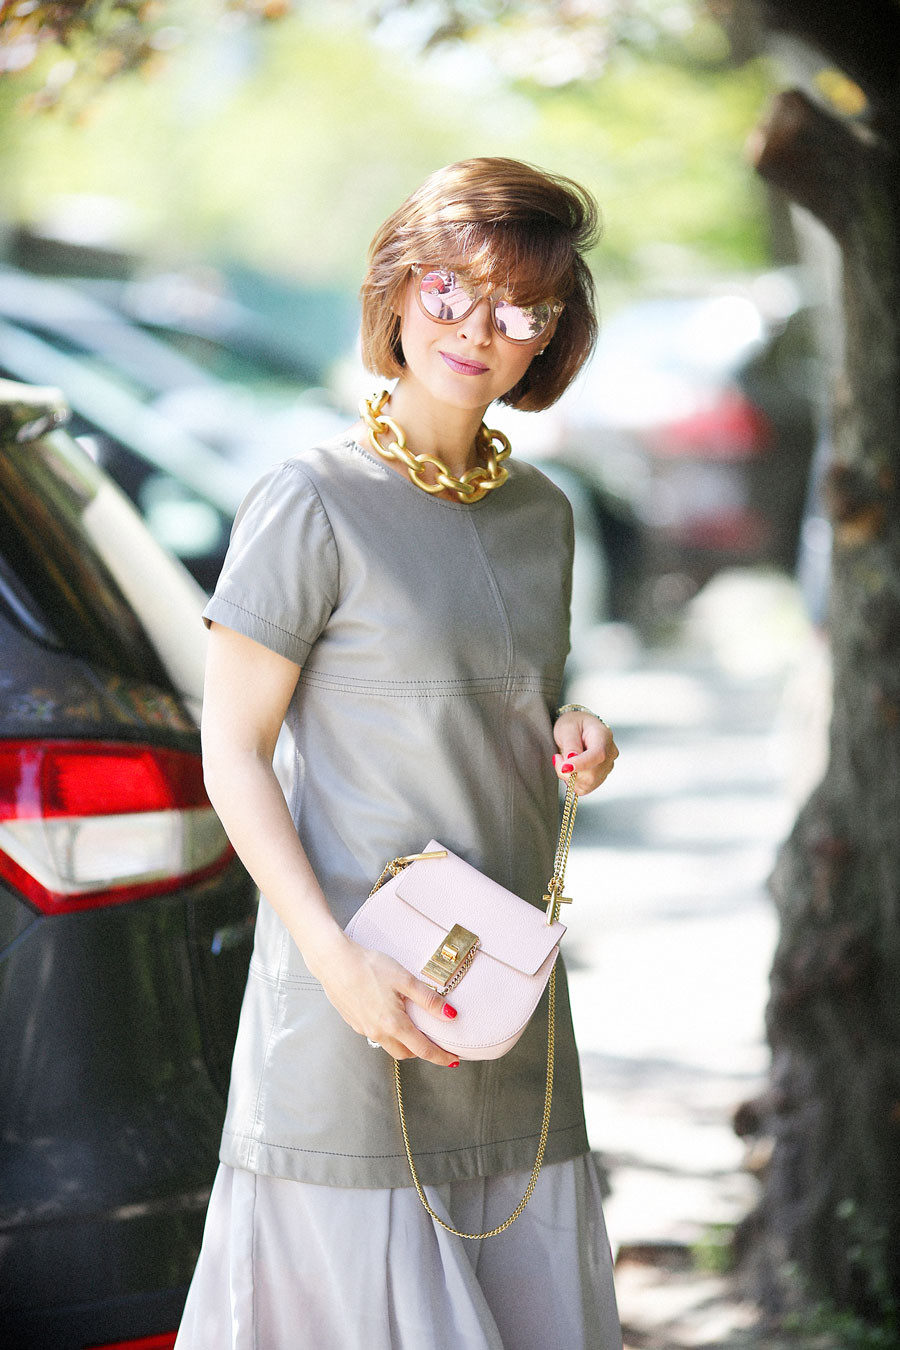 leather dress outfits, chloe drew bag outfits, Golden Accessories Outfit,